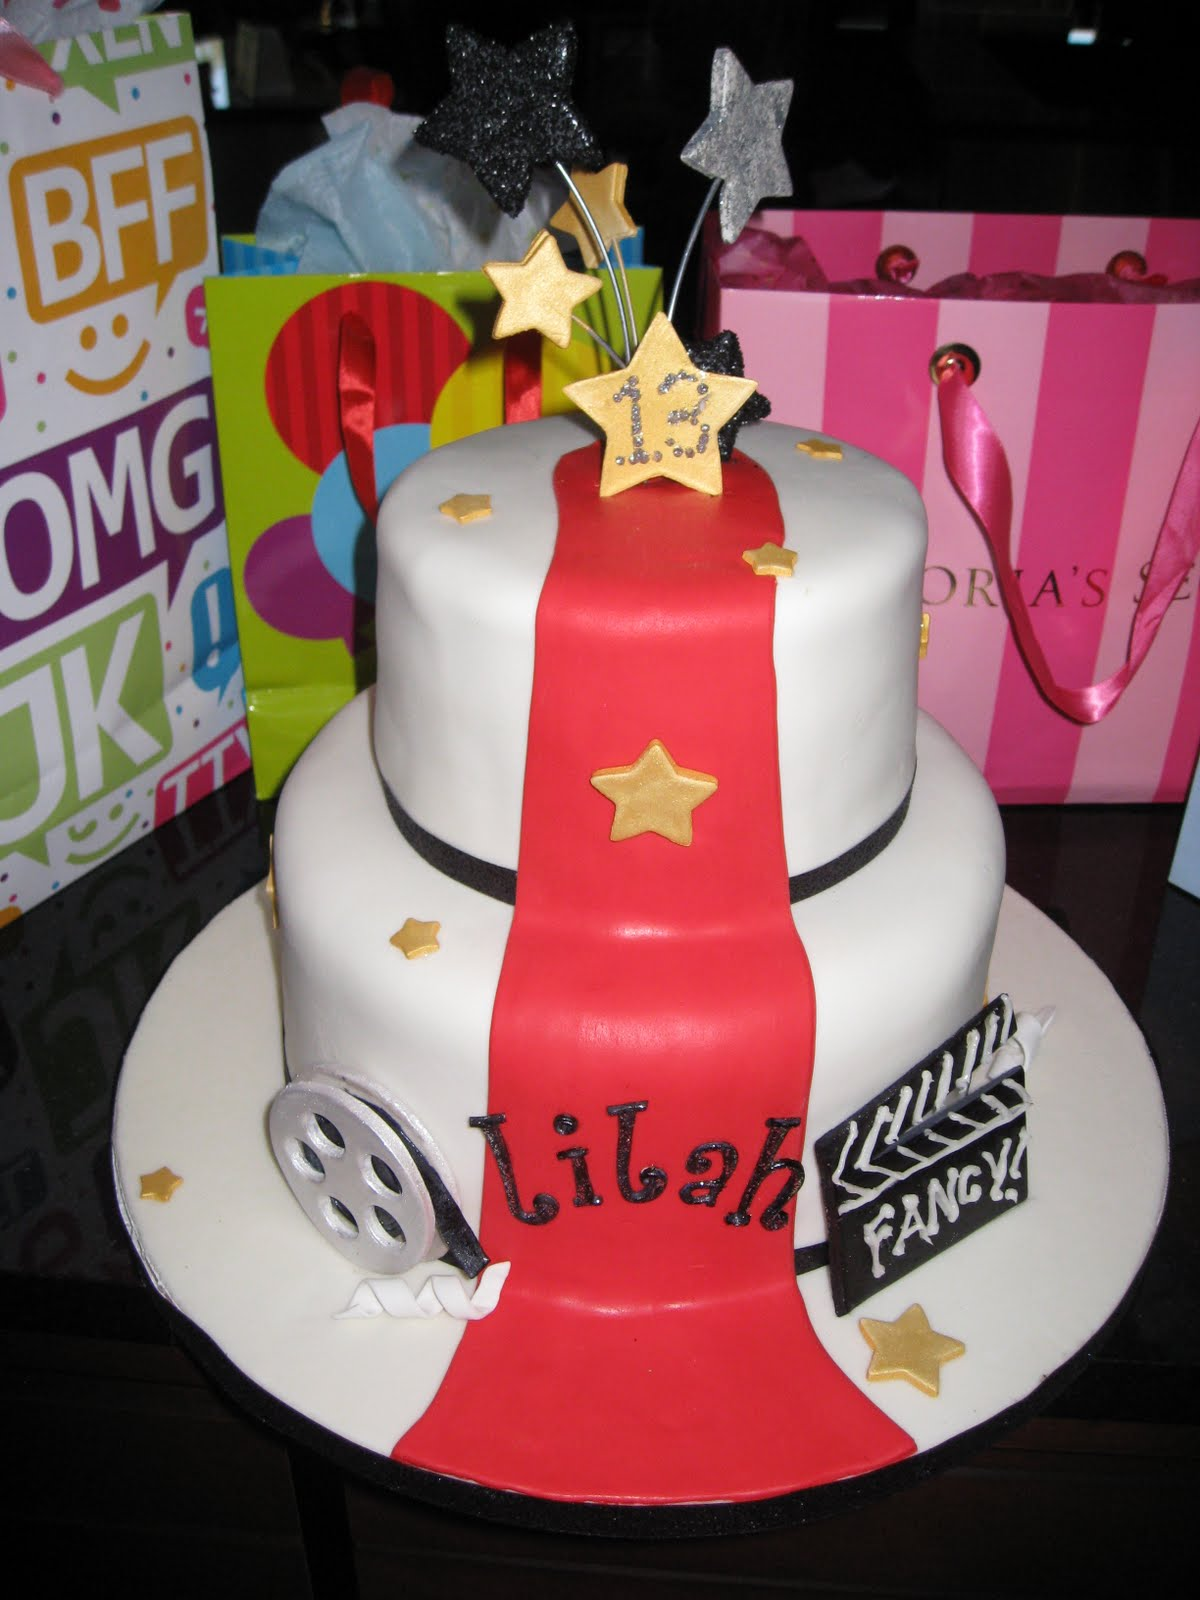 fun cake for a 13-year-old girl's red carpet birthday bash! I am